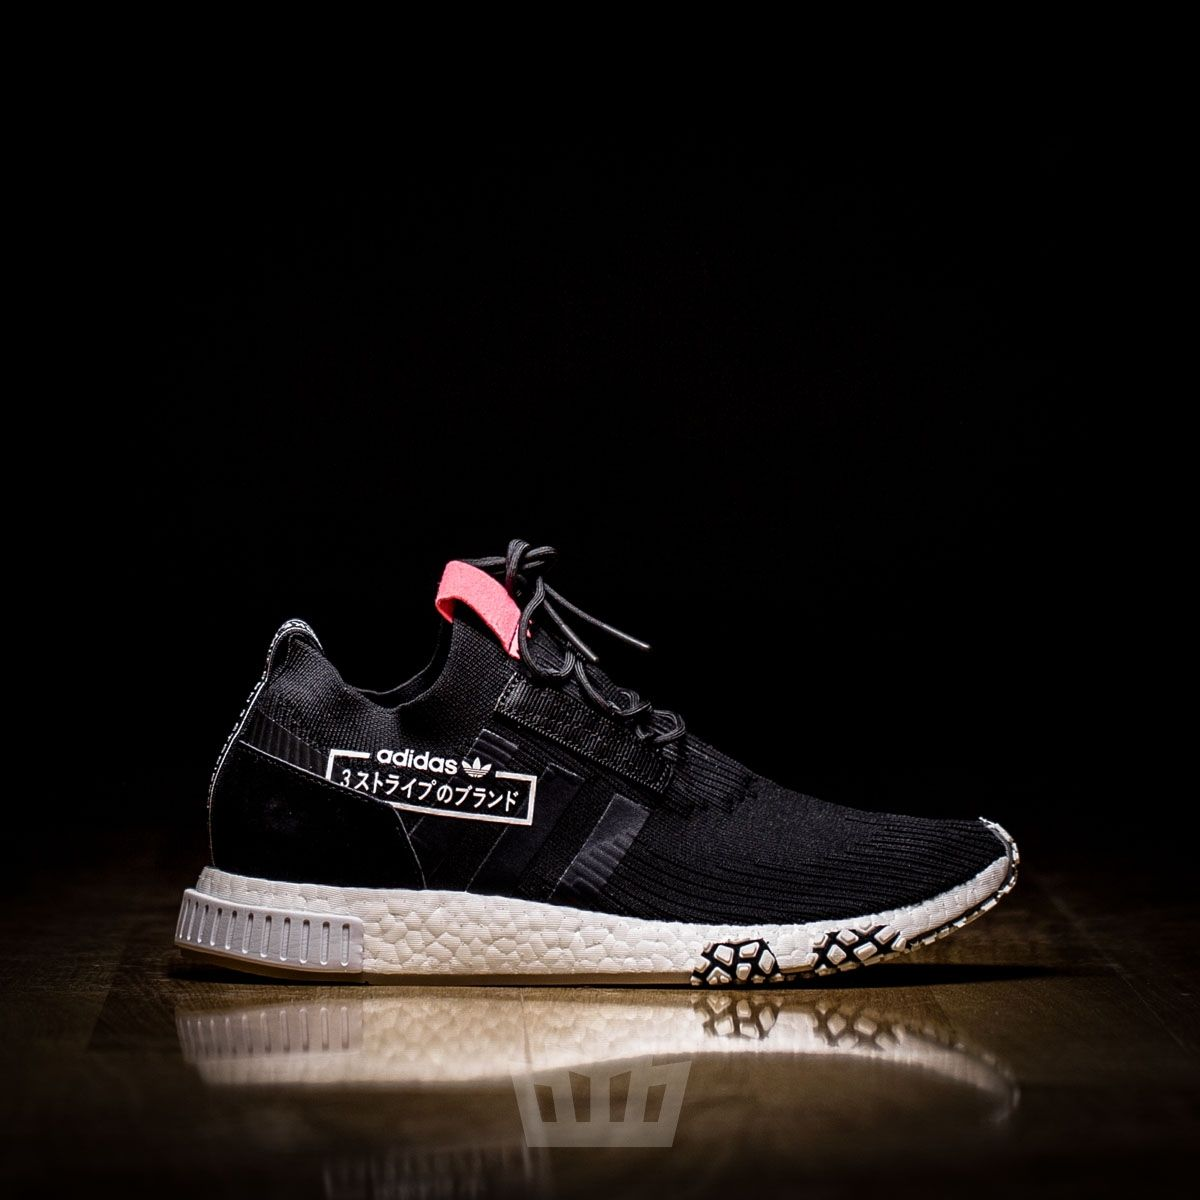 5510a35cabed Adidas NMD Racer PK Black White Gum ALPHATYPE RED ATAF